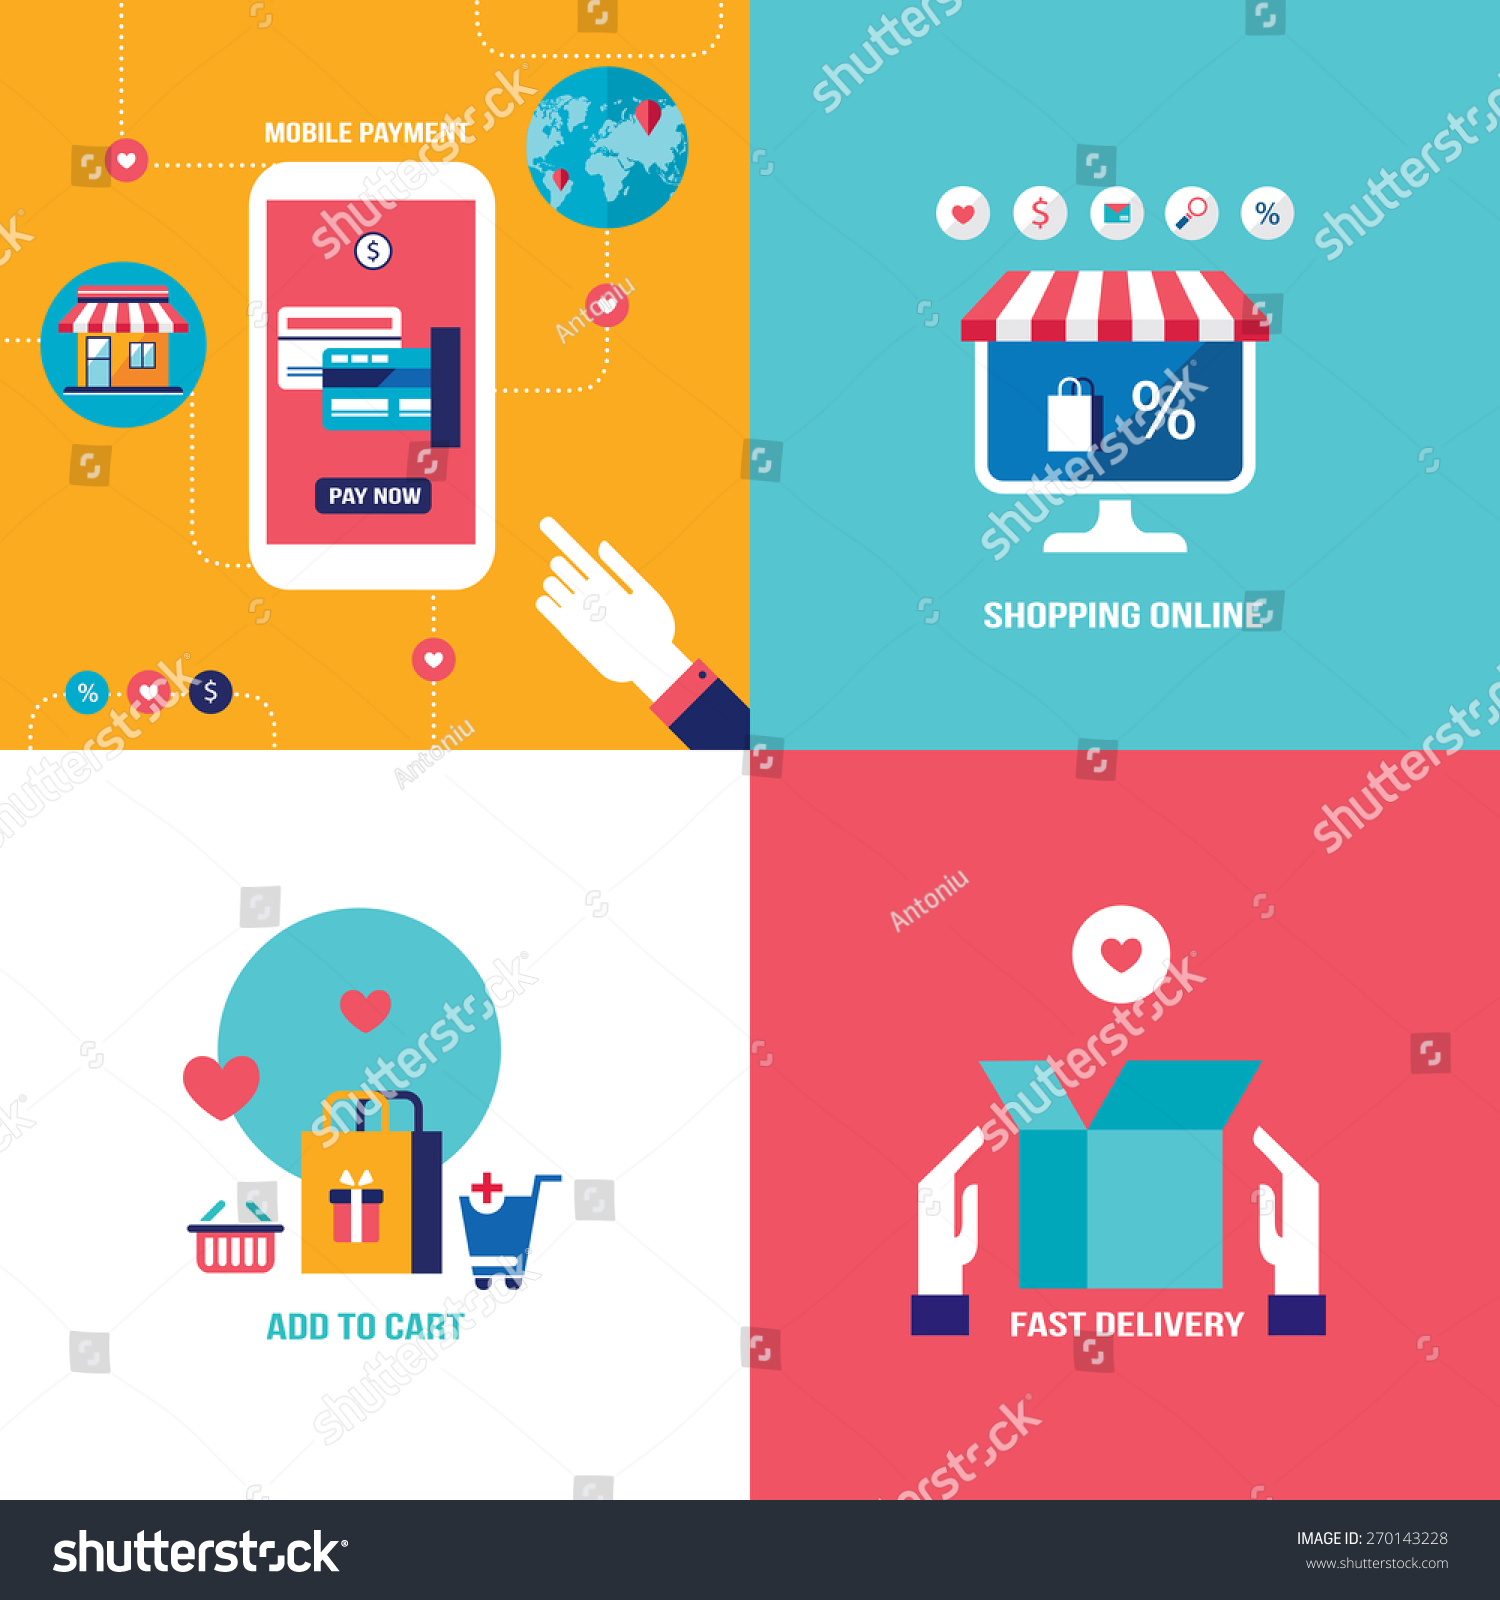 Online Shopping Mode Of Payment Online Shopping Ecommerce Mobile Payment Successful Stock